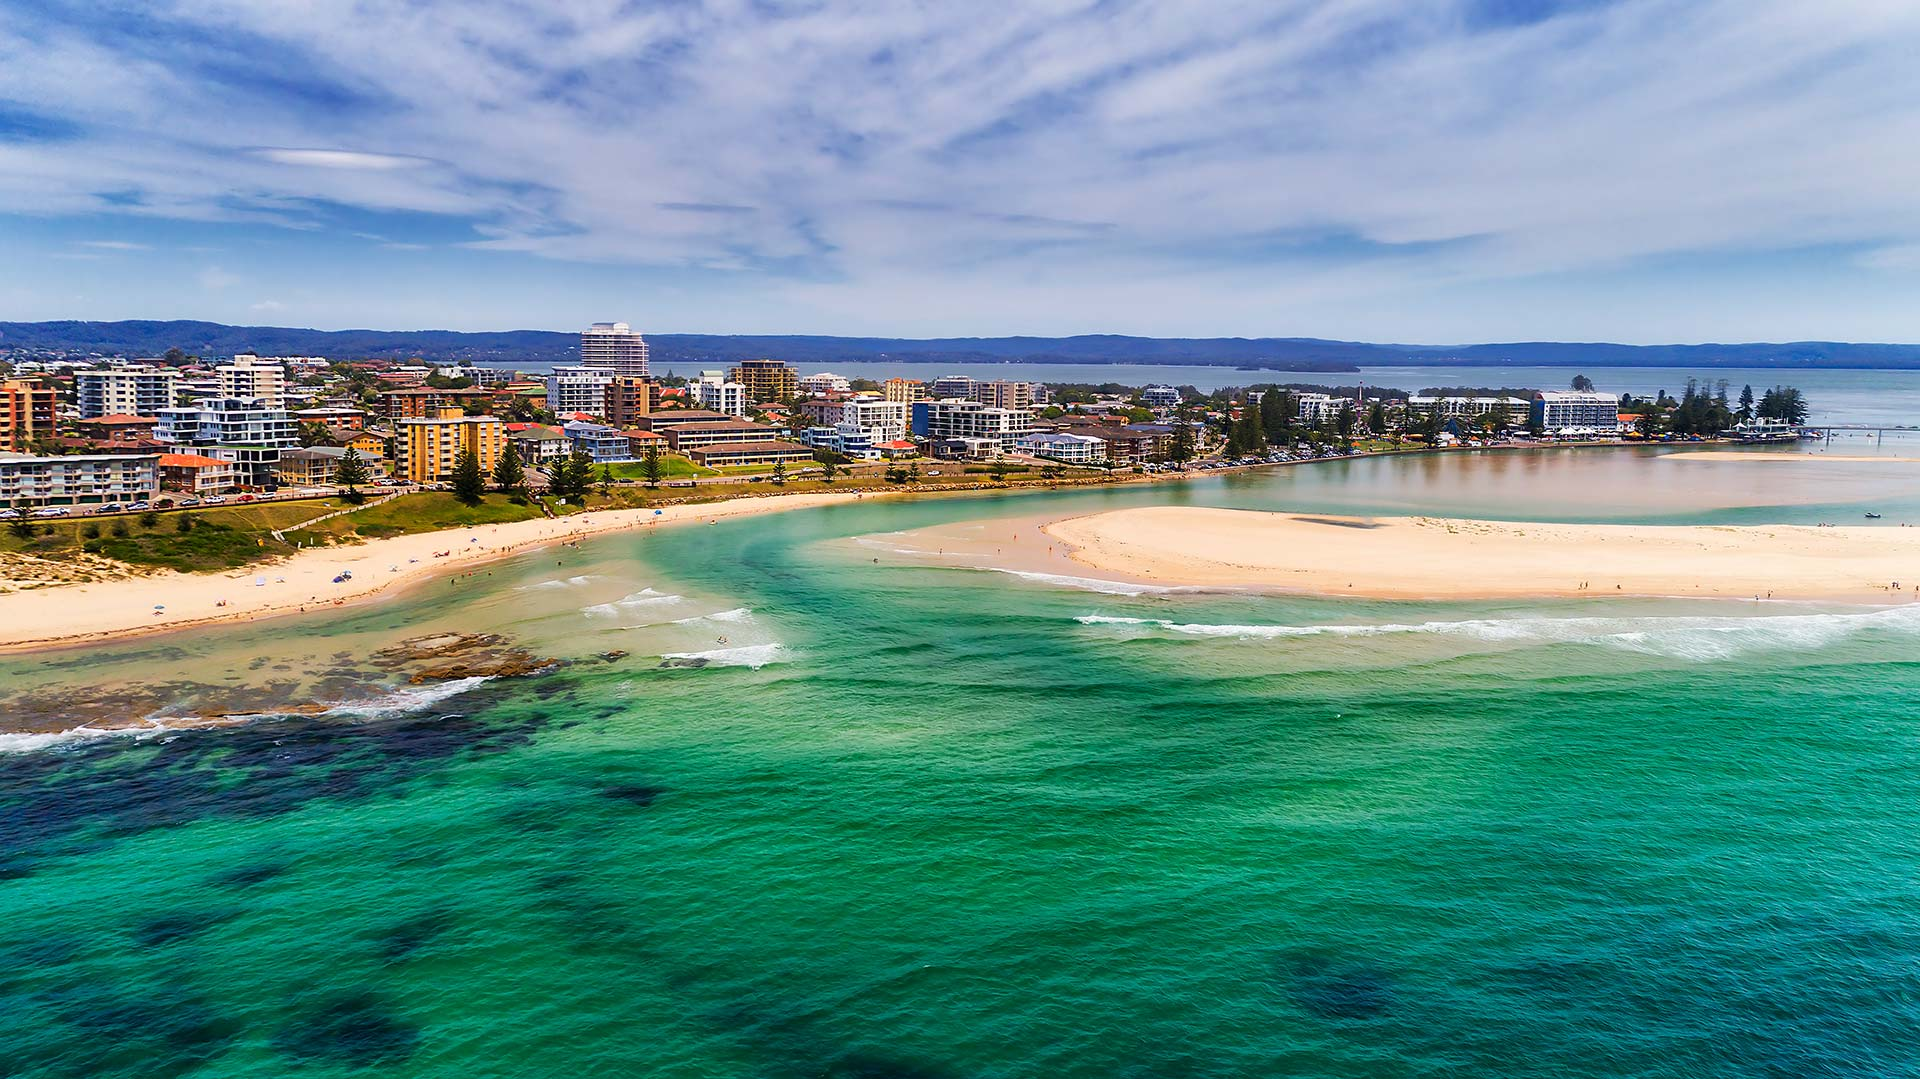 Panorama to illustrate dating in central coast